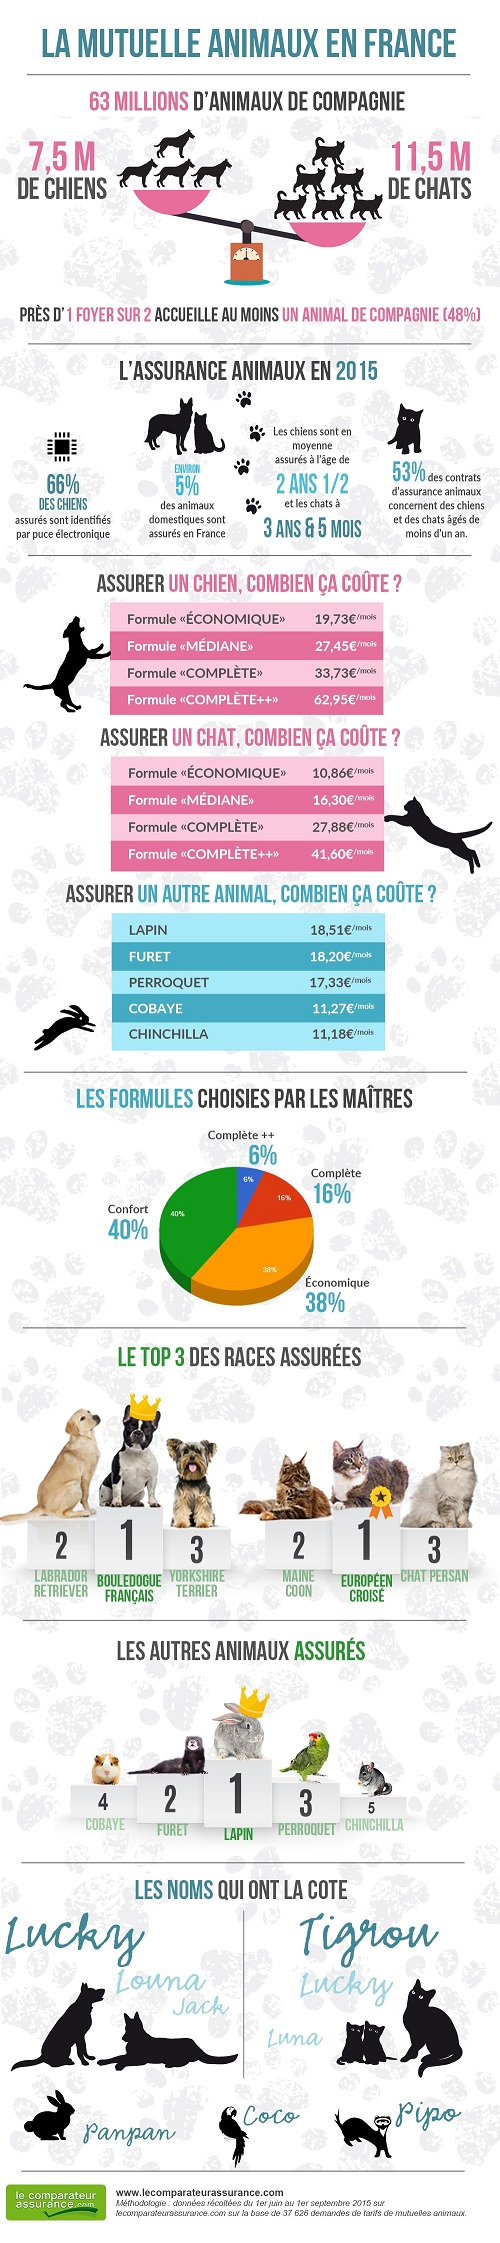 infographie assurances animaux en France